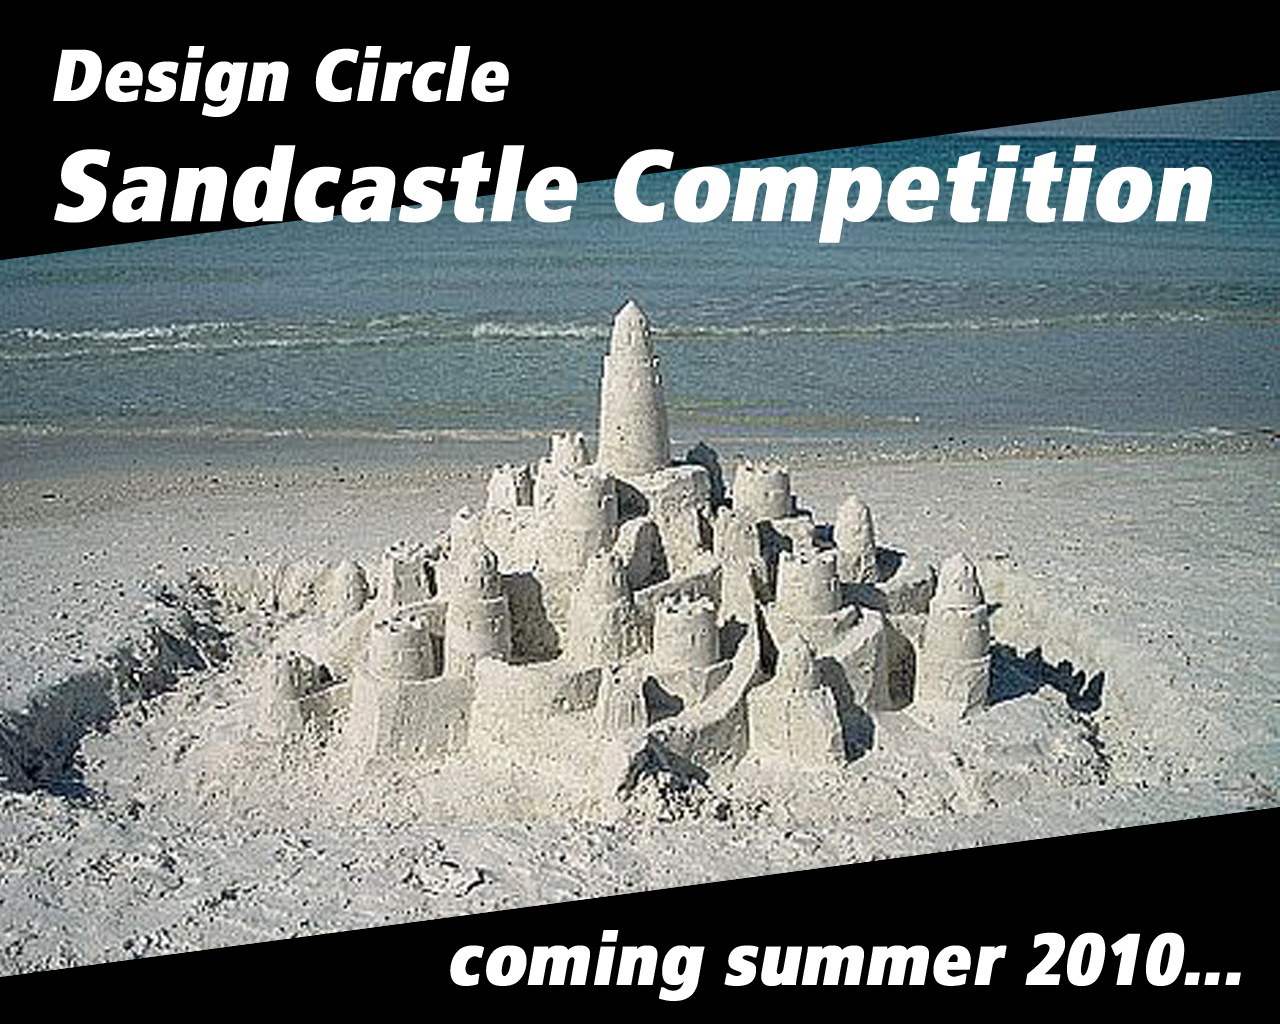 Sandcastle Competition 2010